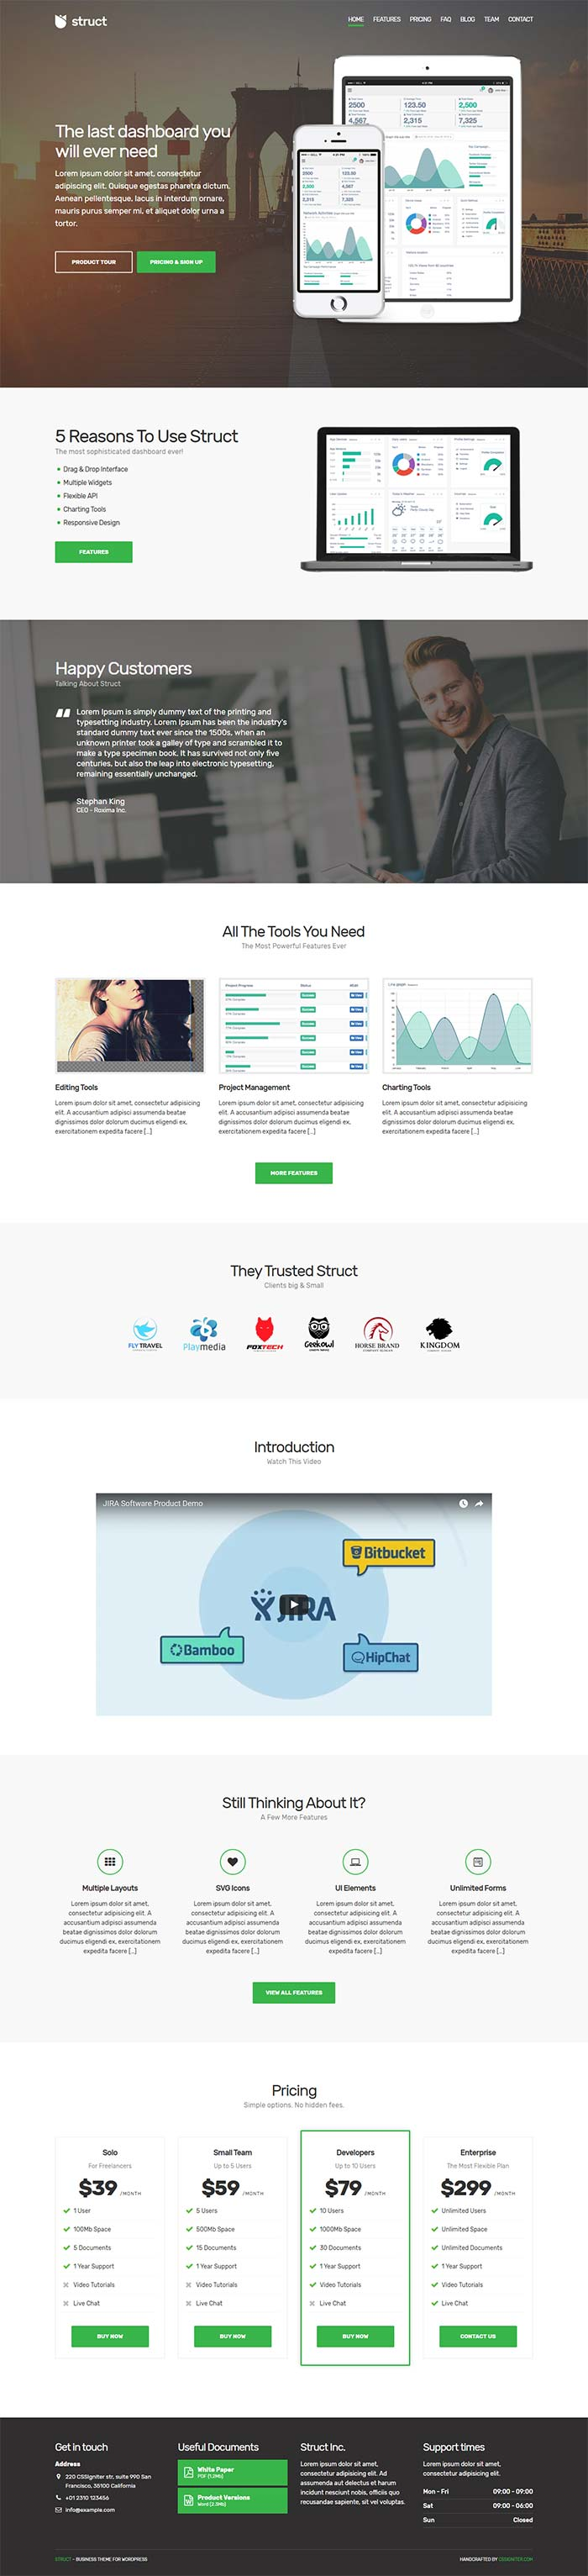 Struct-The-Best-Software-Business-WordPress-Theme